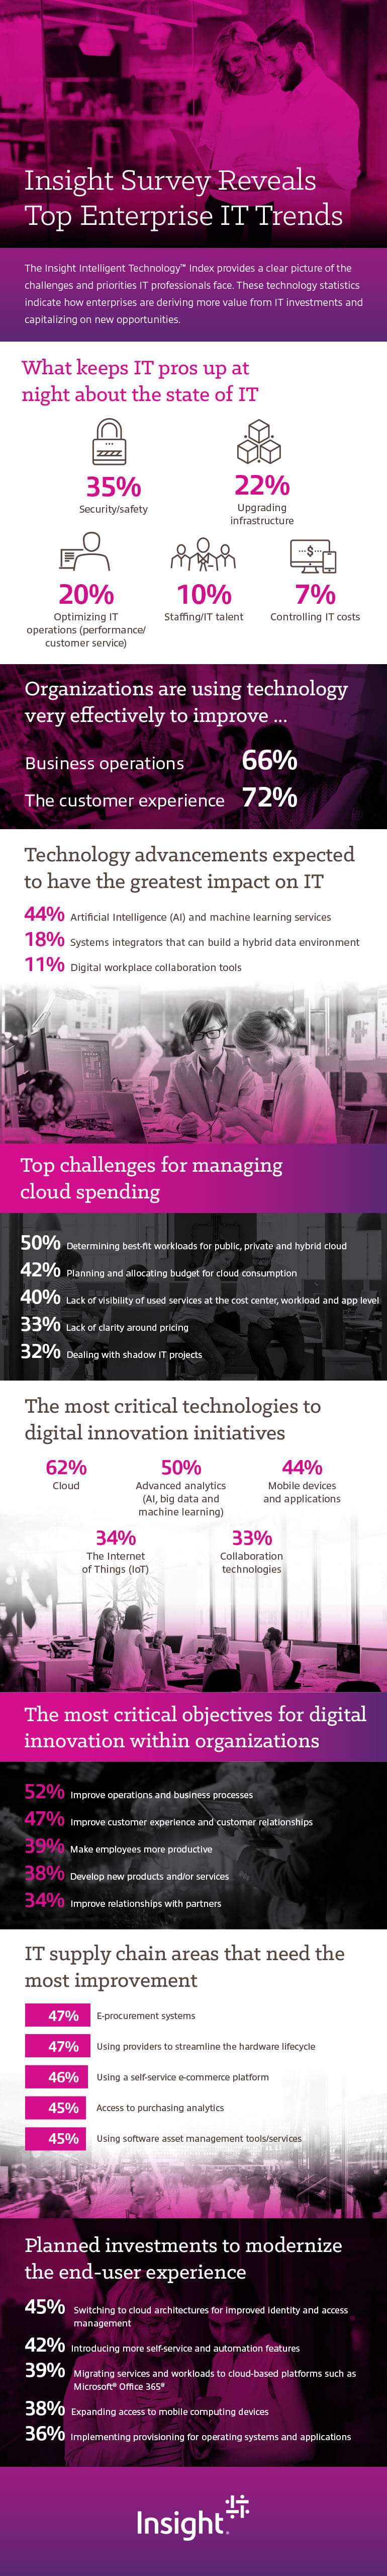 Infographic displaying Insight Survey Reveals Top Enterprise IT Trends. Translated below.